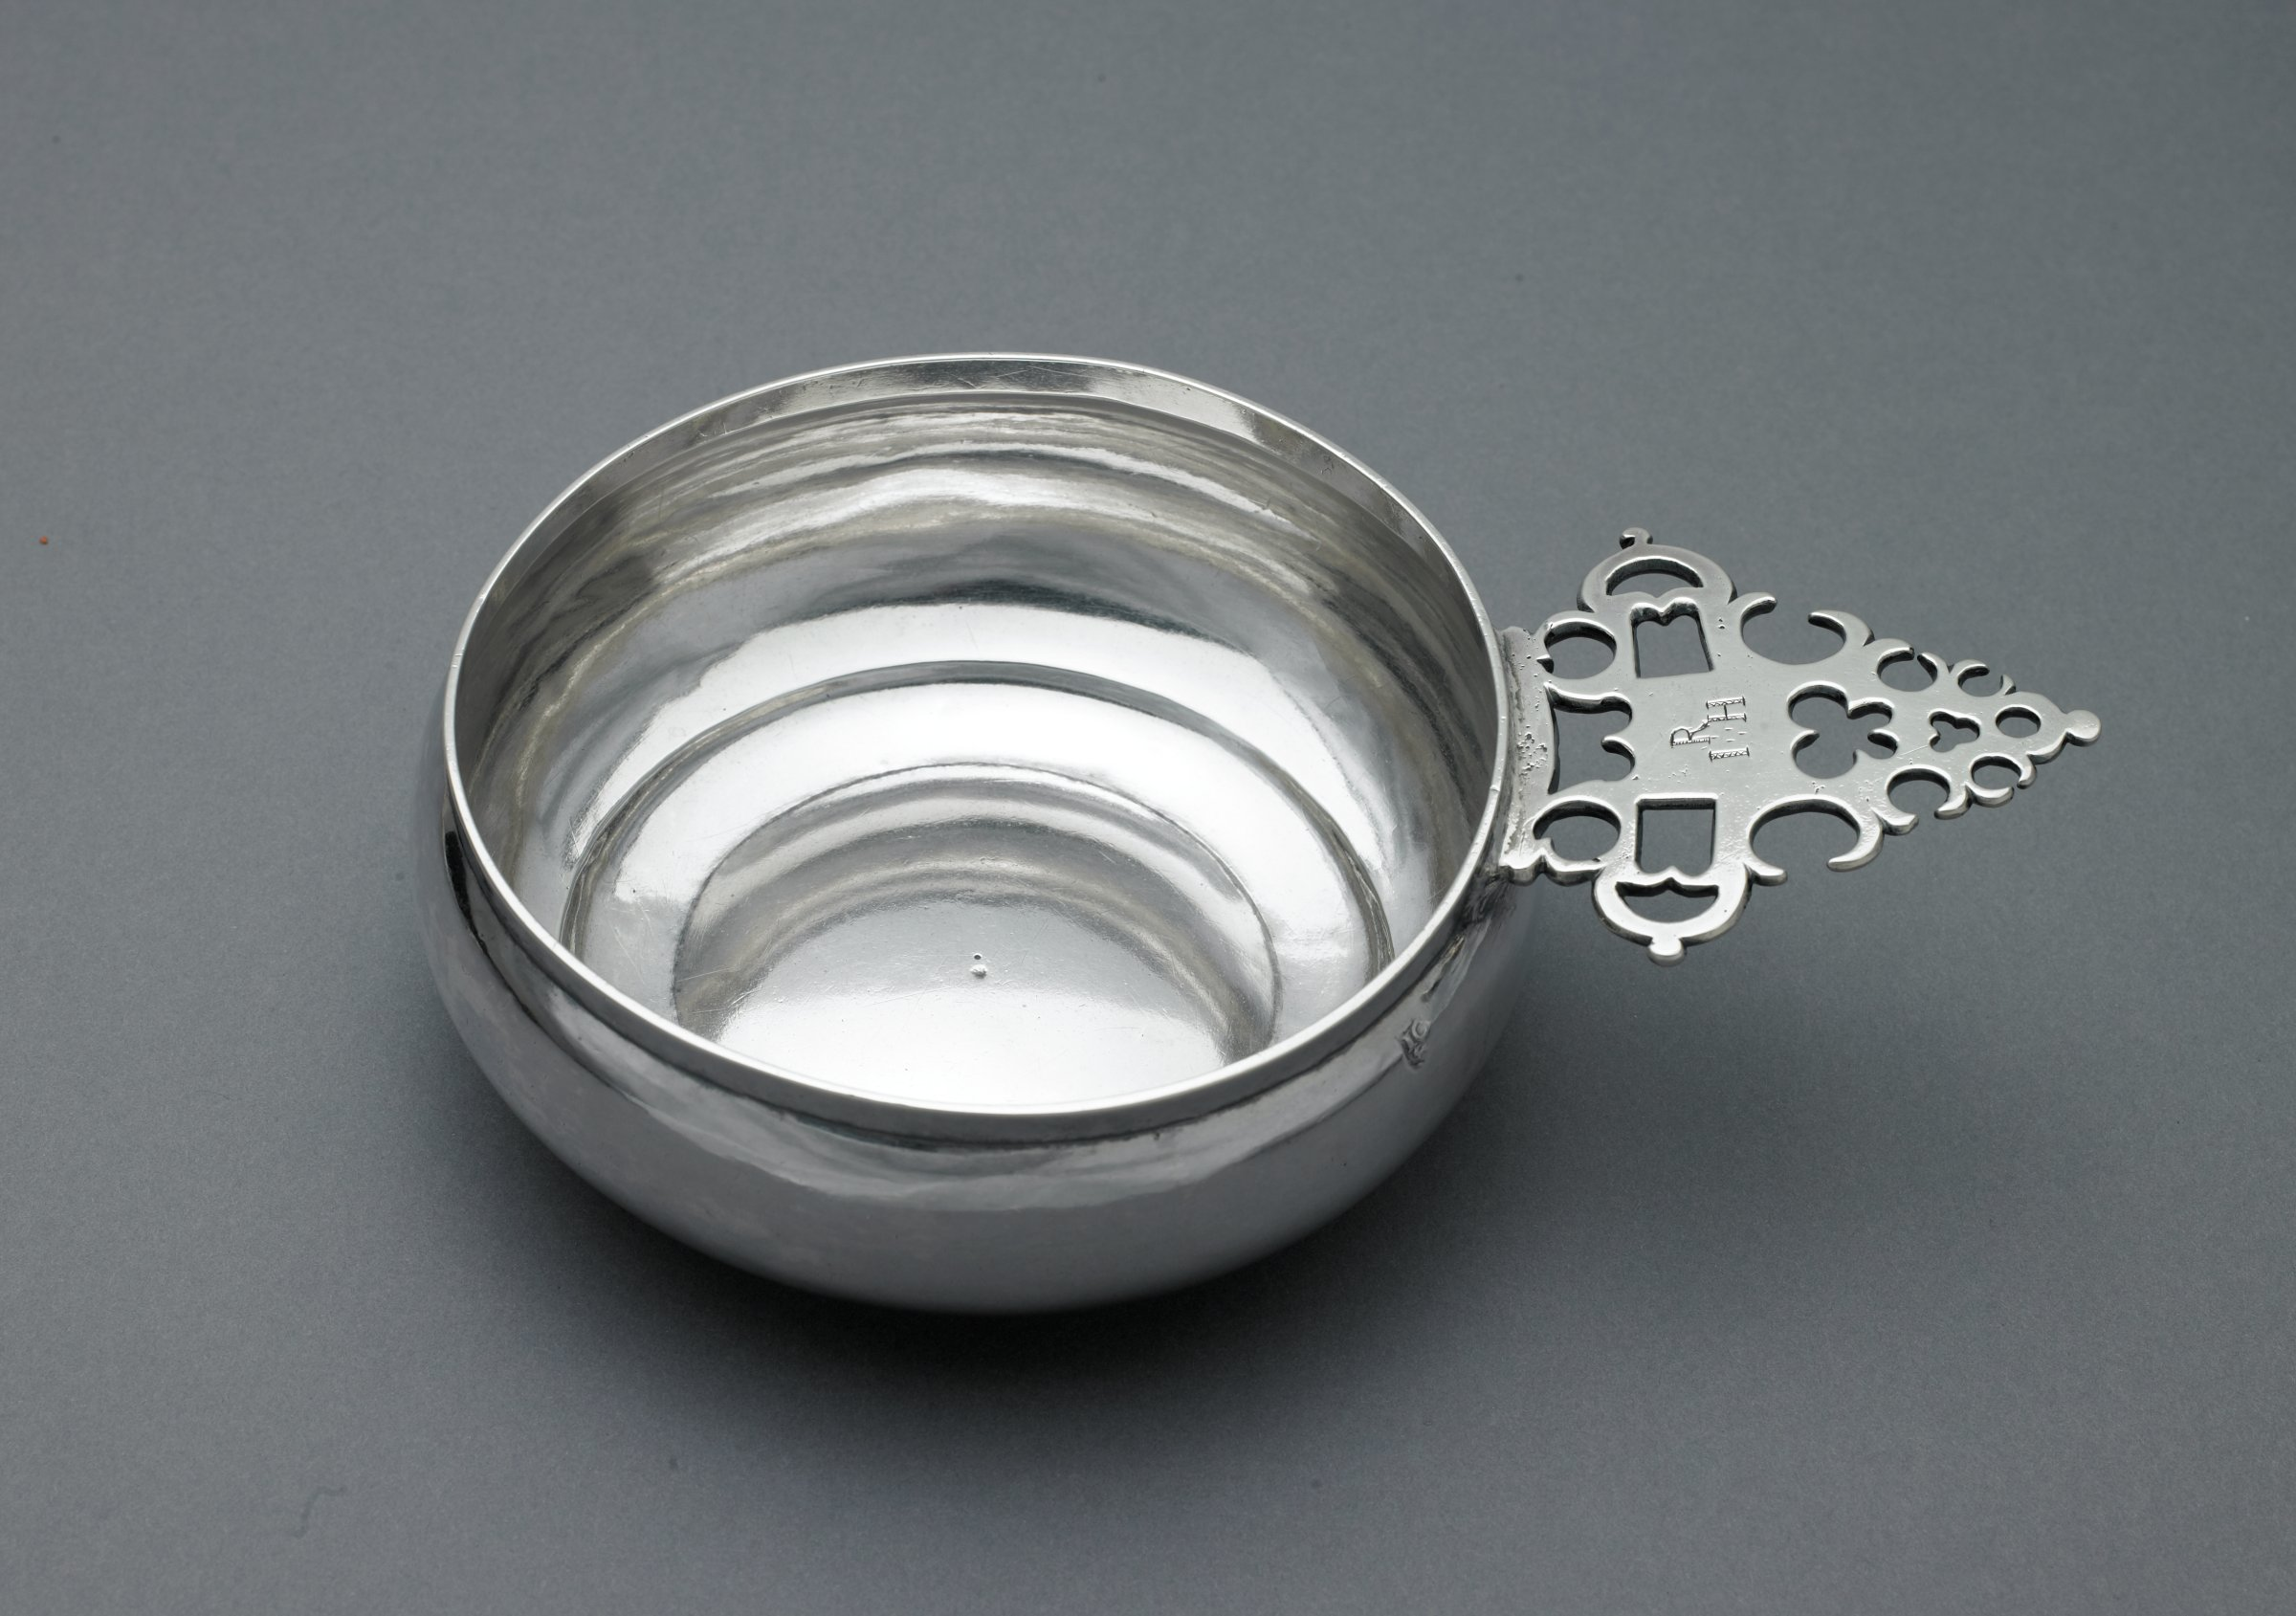 Silver porringer, a small bowl, typically with a handle, used for soup, stew, or similar dishes, of typical form comprised of a round  bowl with keyhole handle, engraved on the top of the handle with the initials R over I * H.